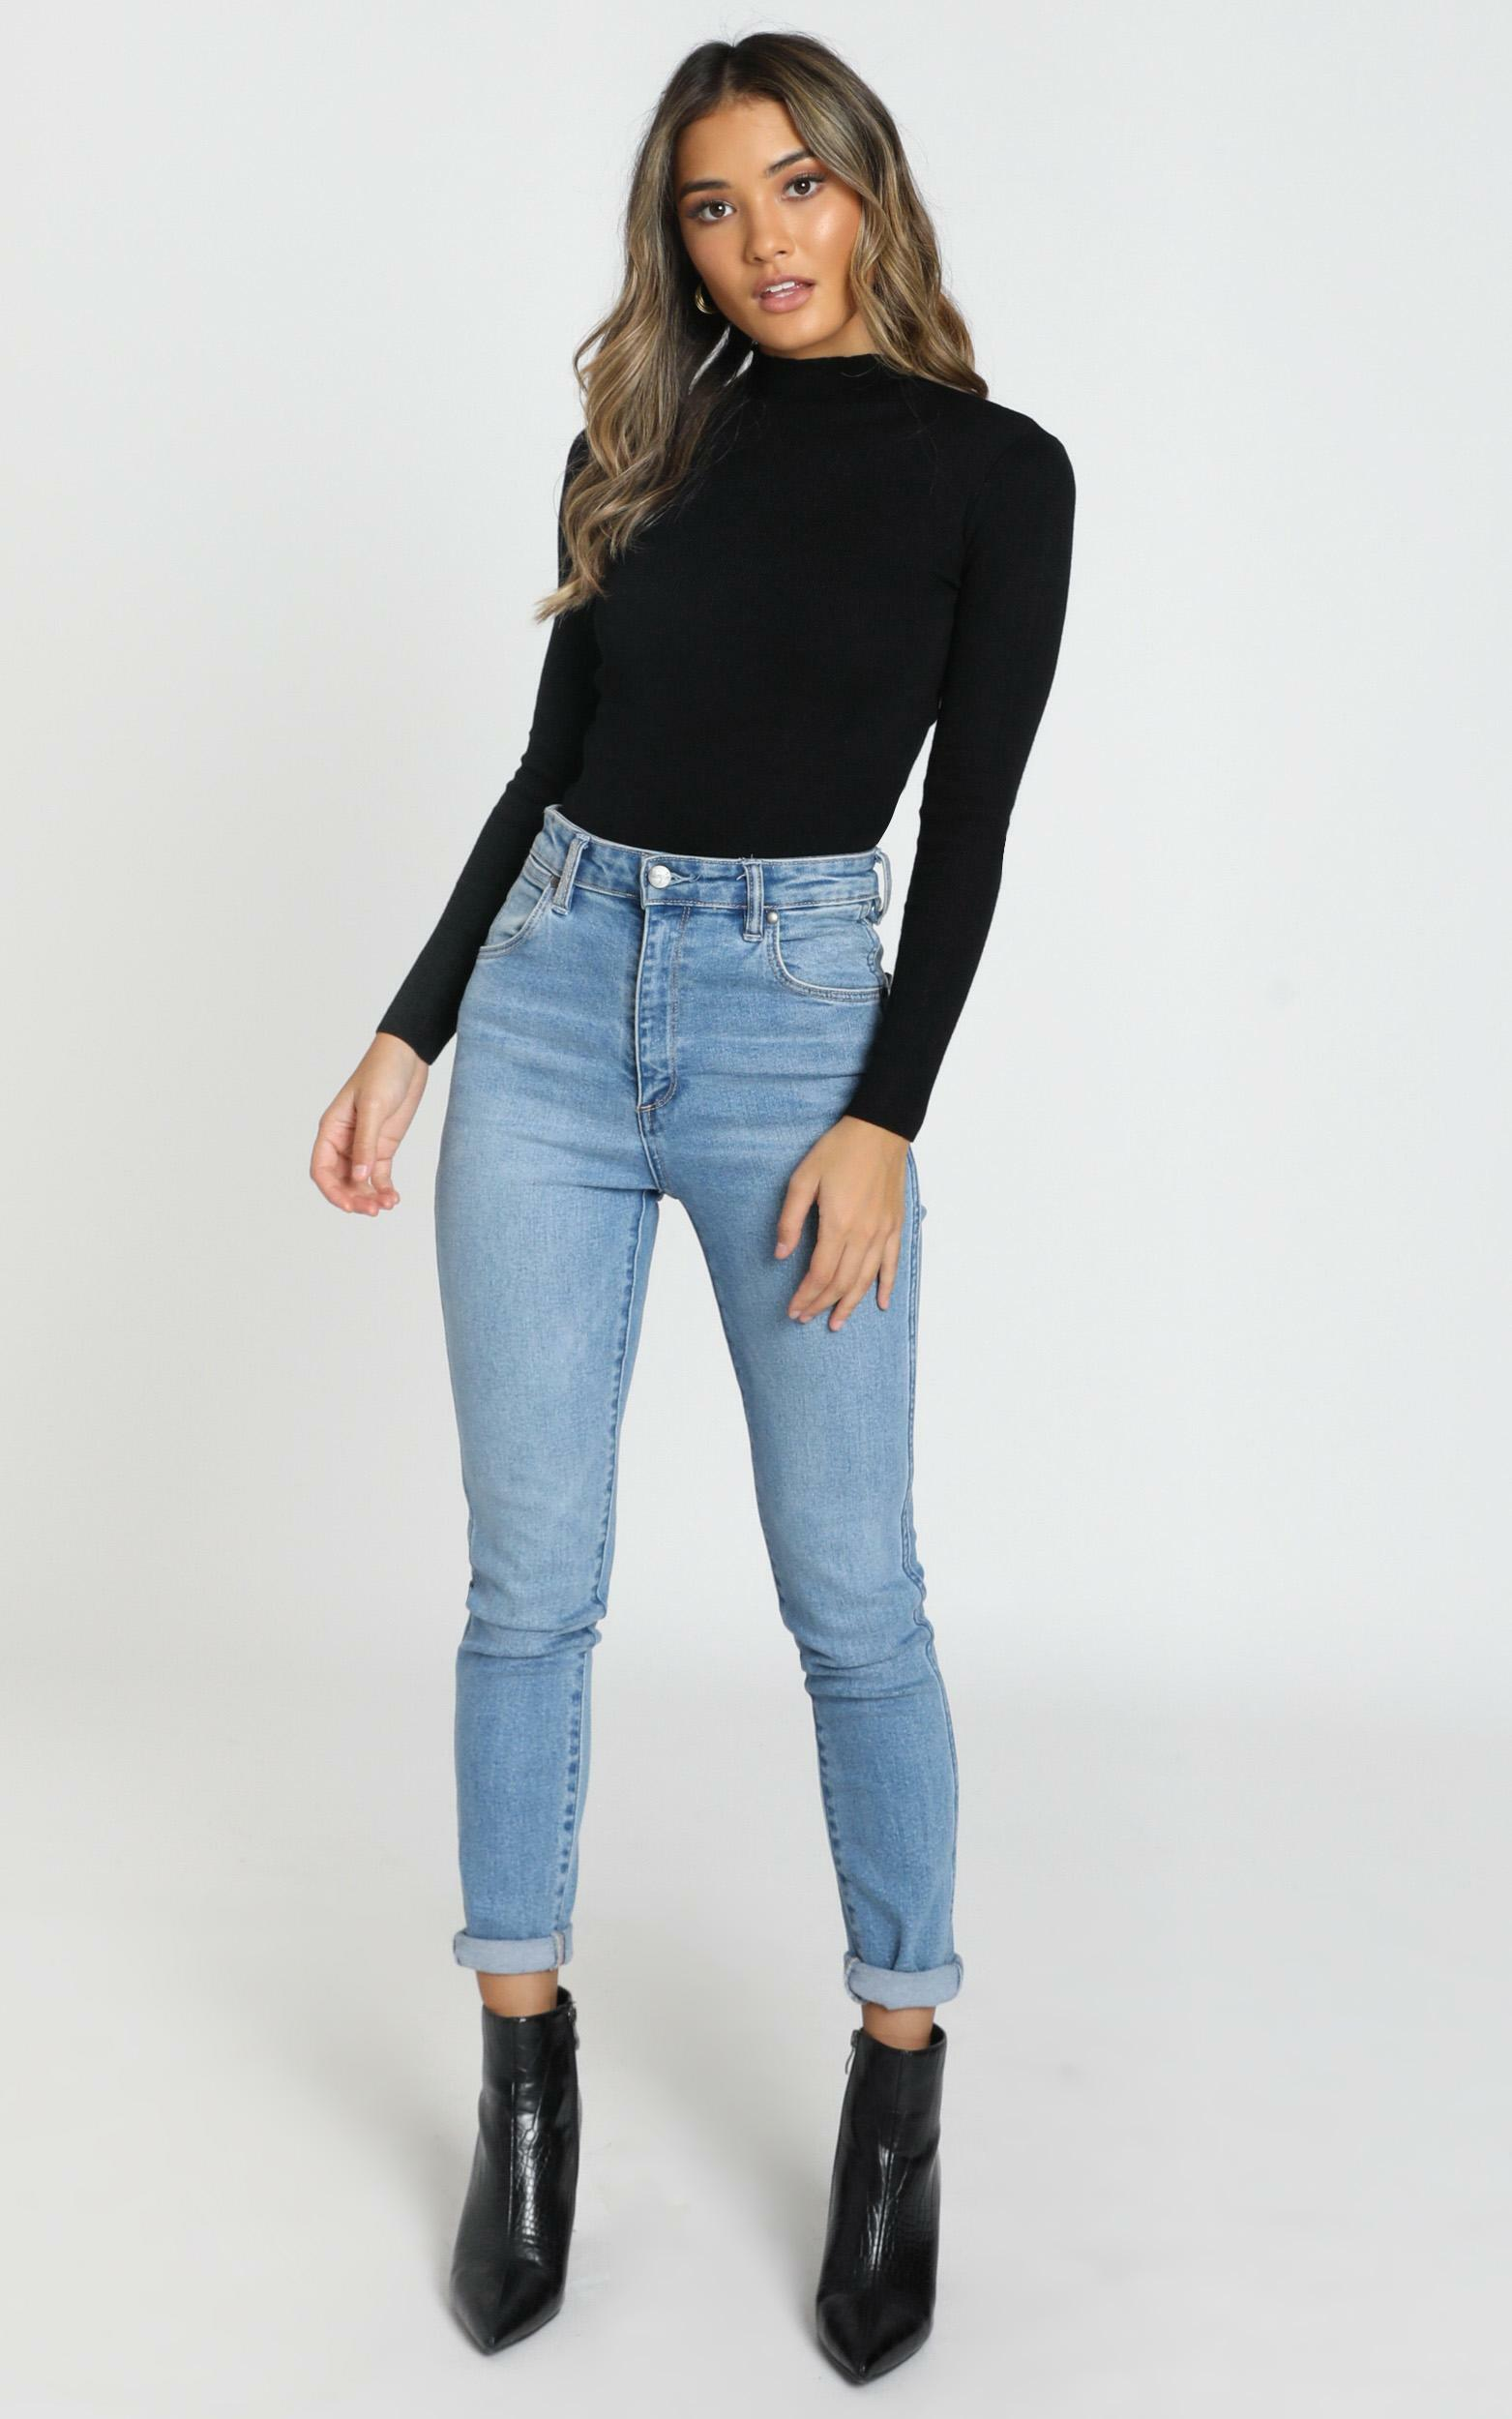 Lust For Life knit top in black - 6 (XS), Black, hi-res image number null